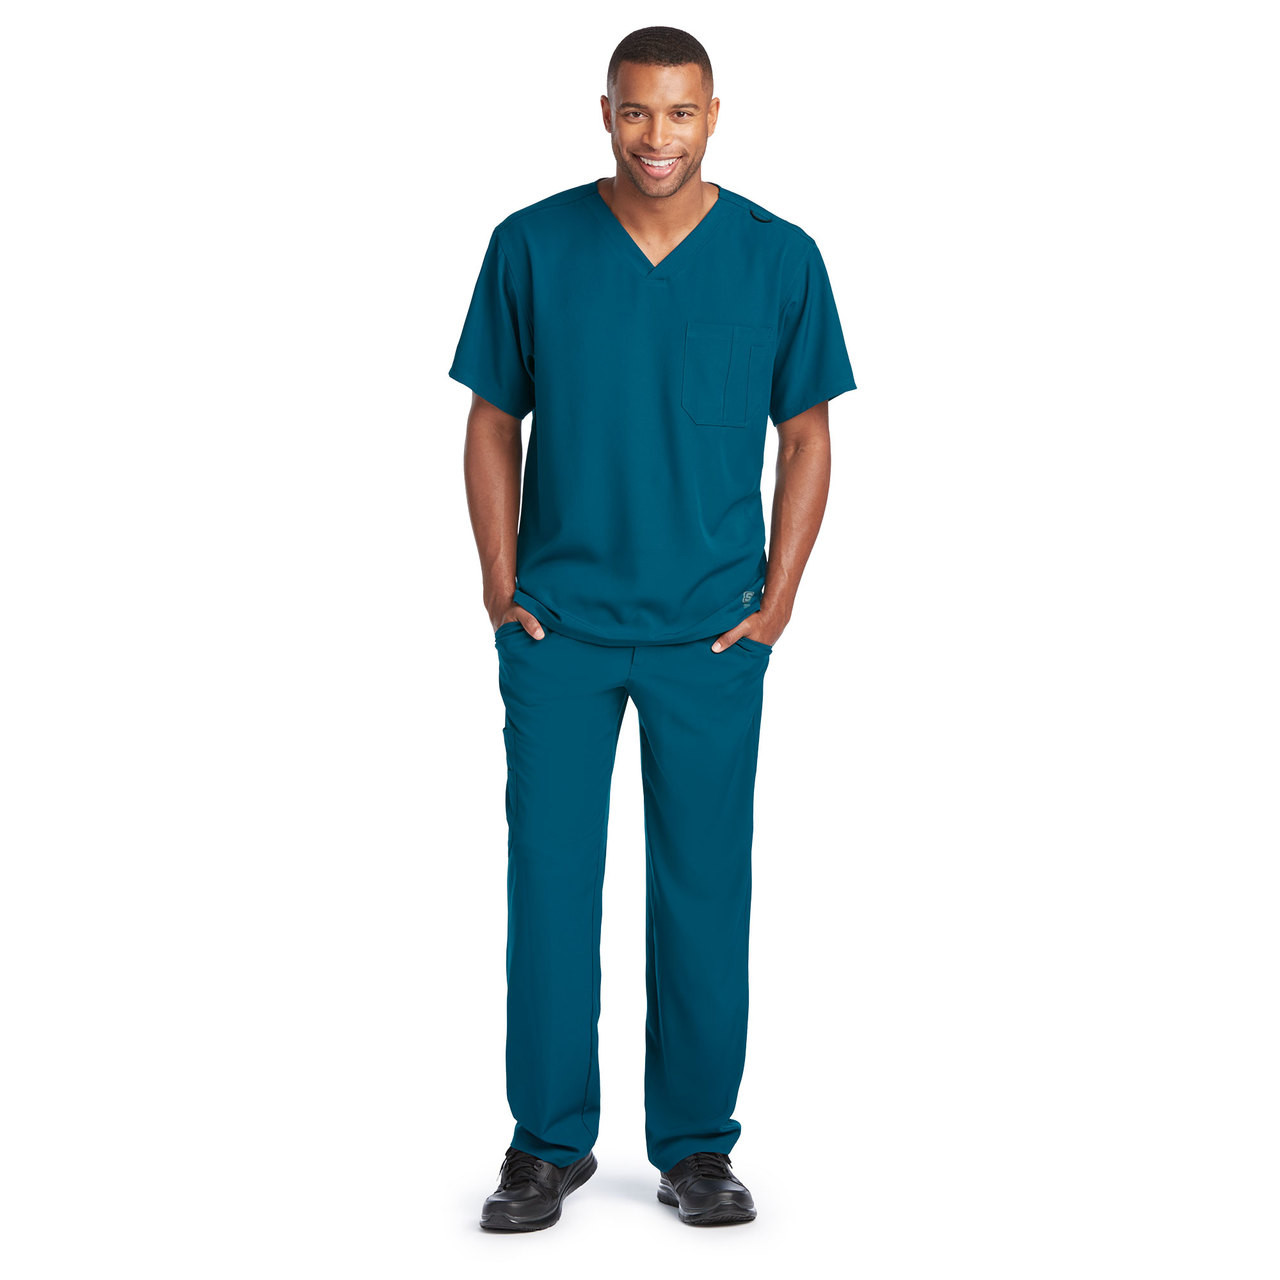 d415b287d983 (SK0112) Skechers Scrubs - Men s Structure 1 Pocket V-Neck Scrub Top ...